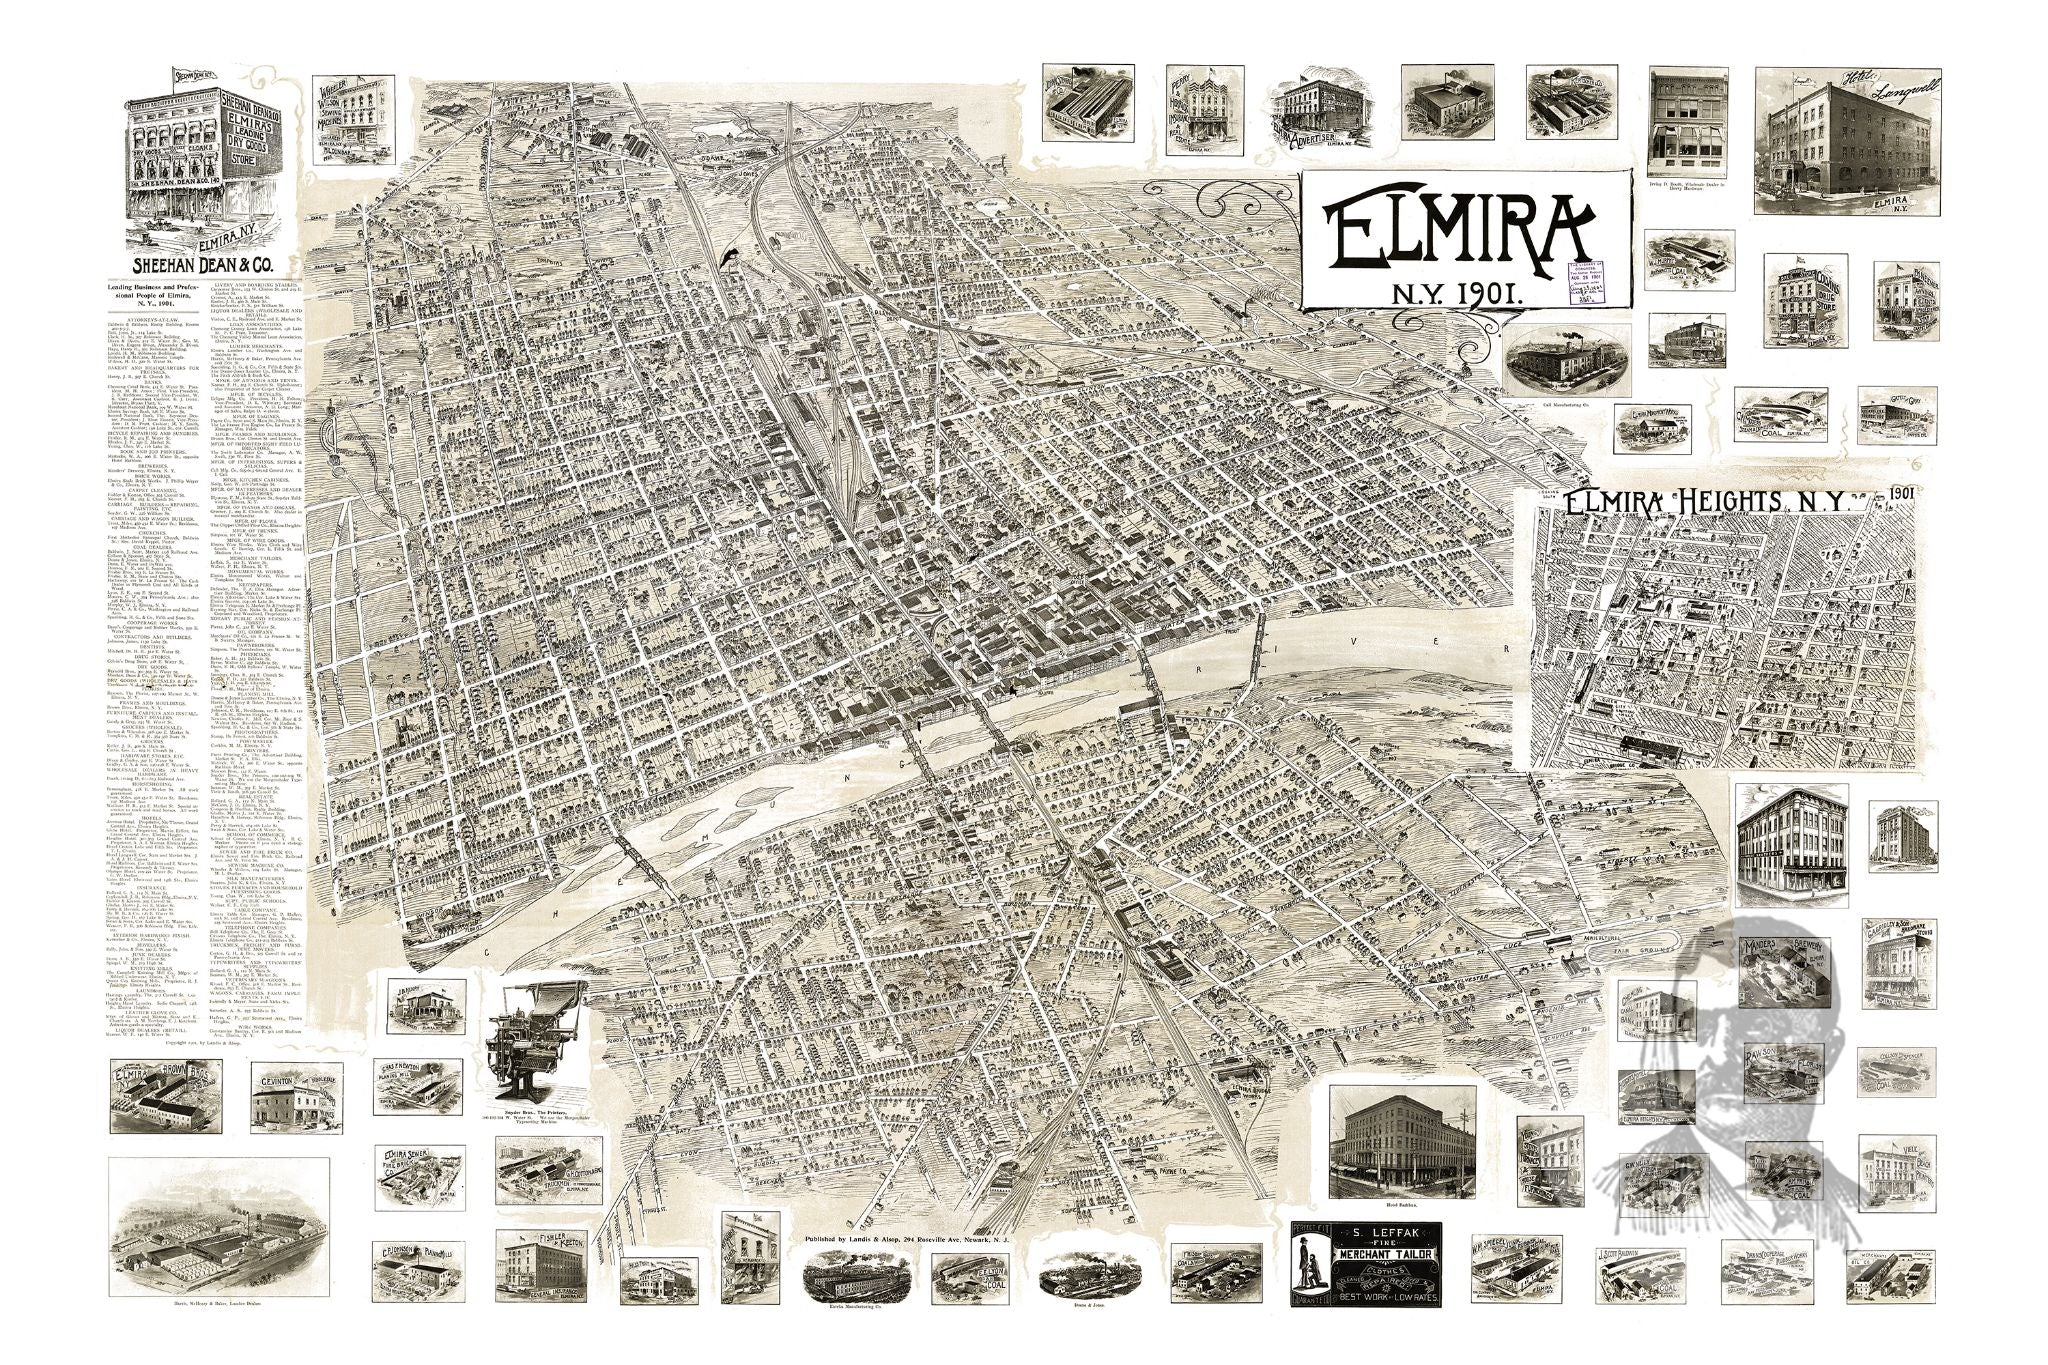 Elmira, NY Historical Map - 1901